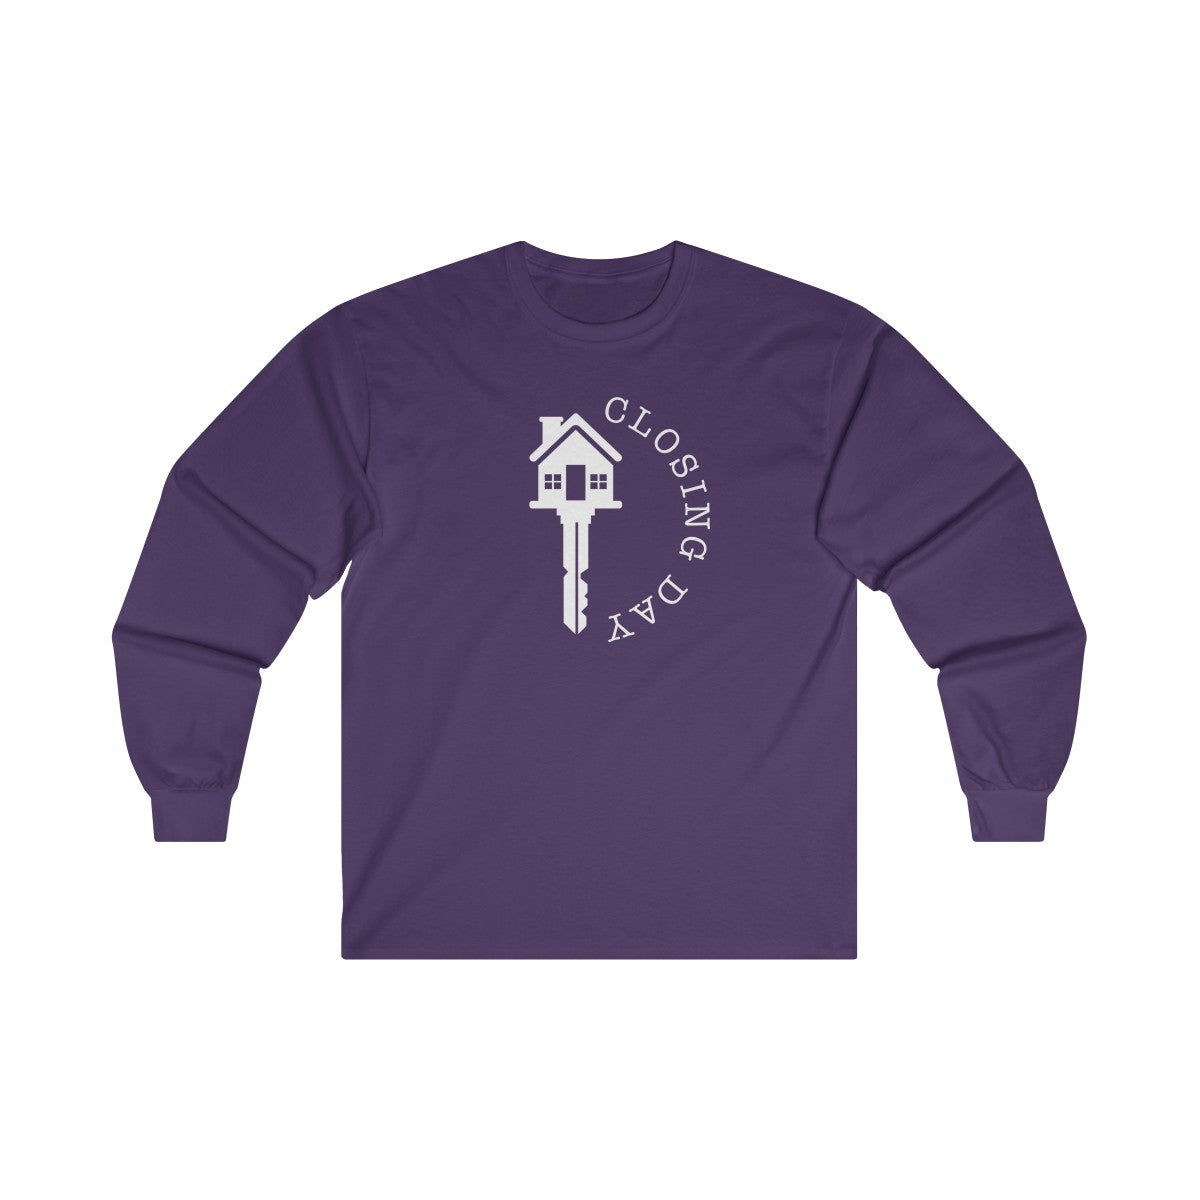 Closing Day Unisex Long Sleeve Tee